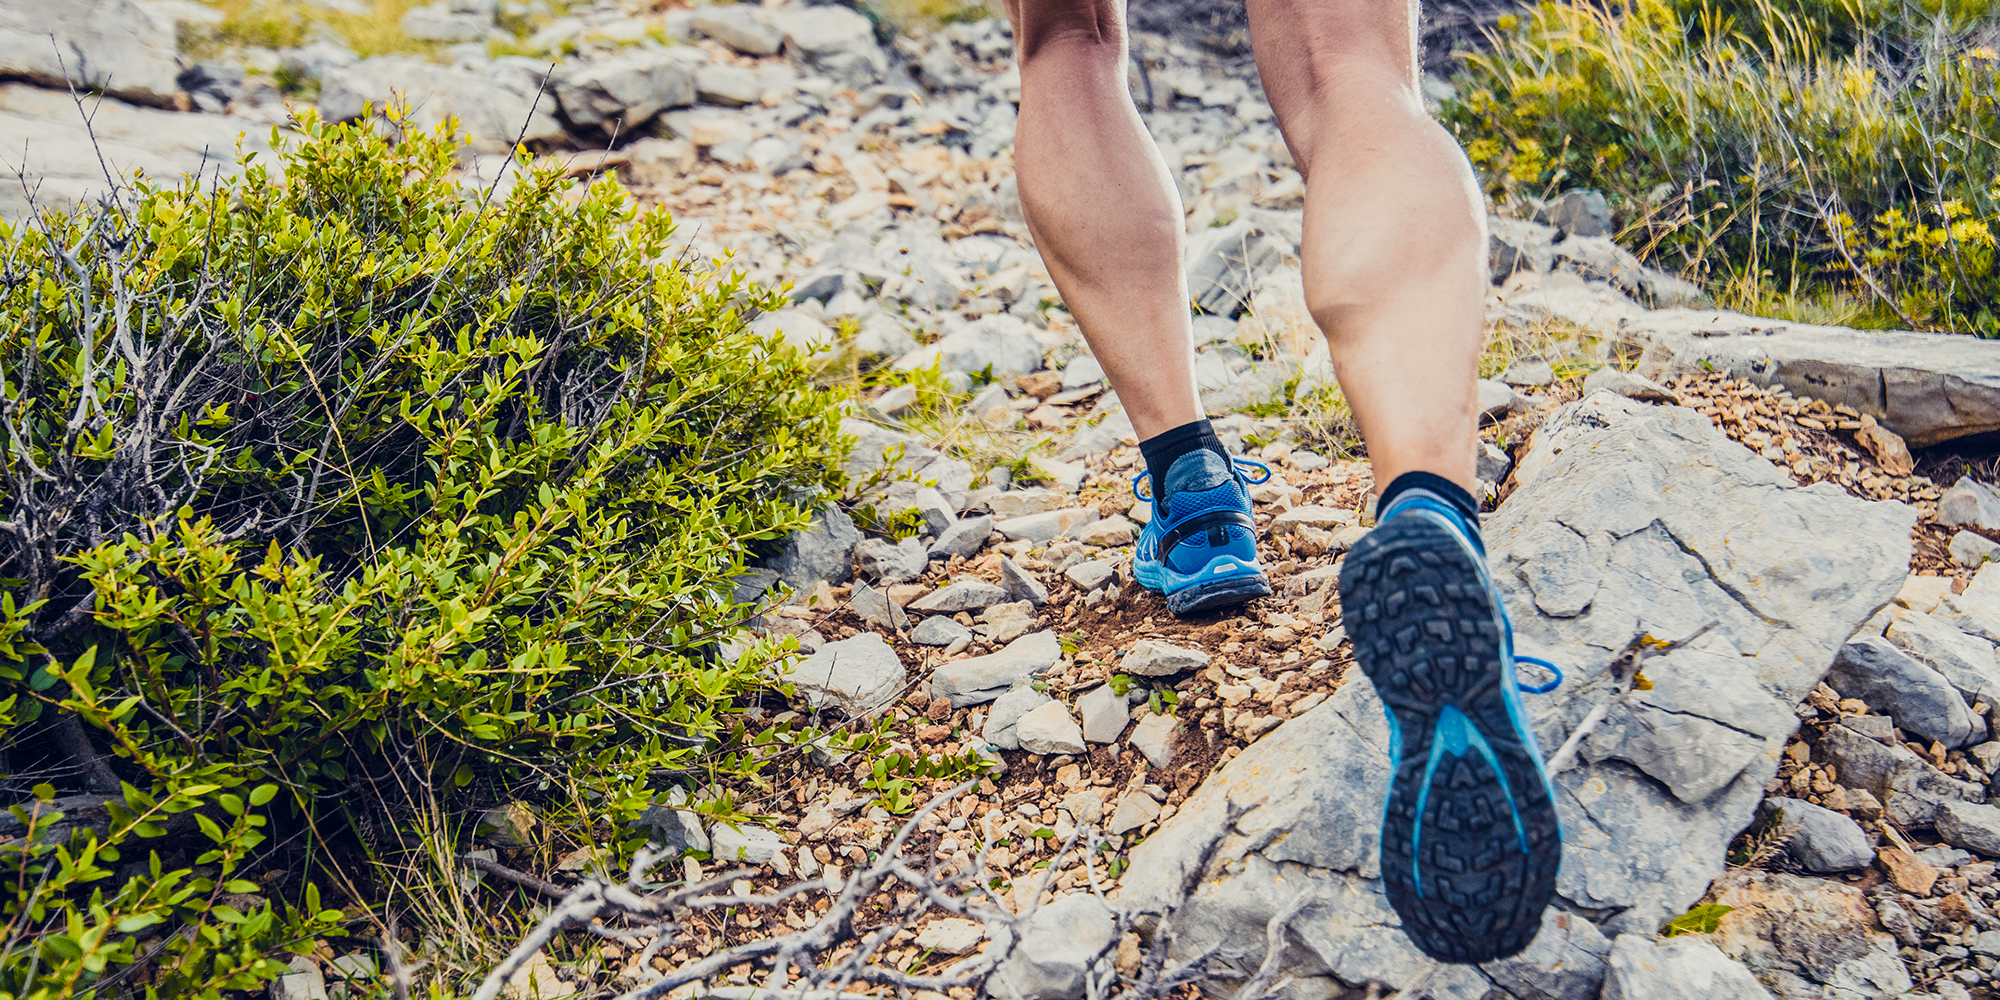 11 Best Trail Running Shoes for Men to Take on Any Terrain 2020